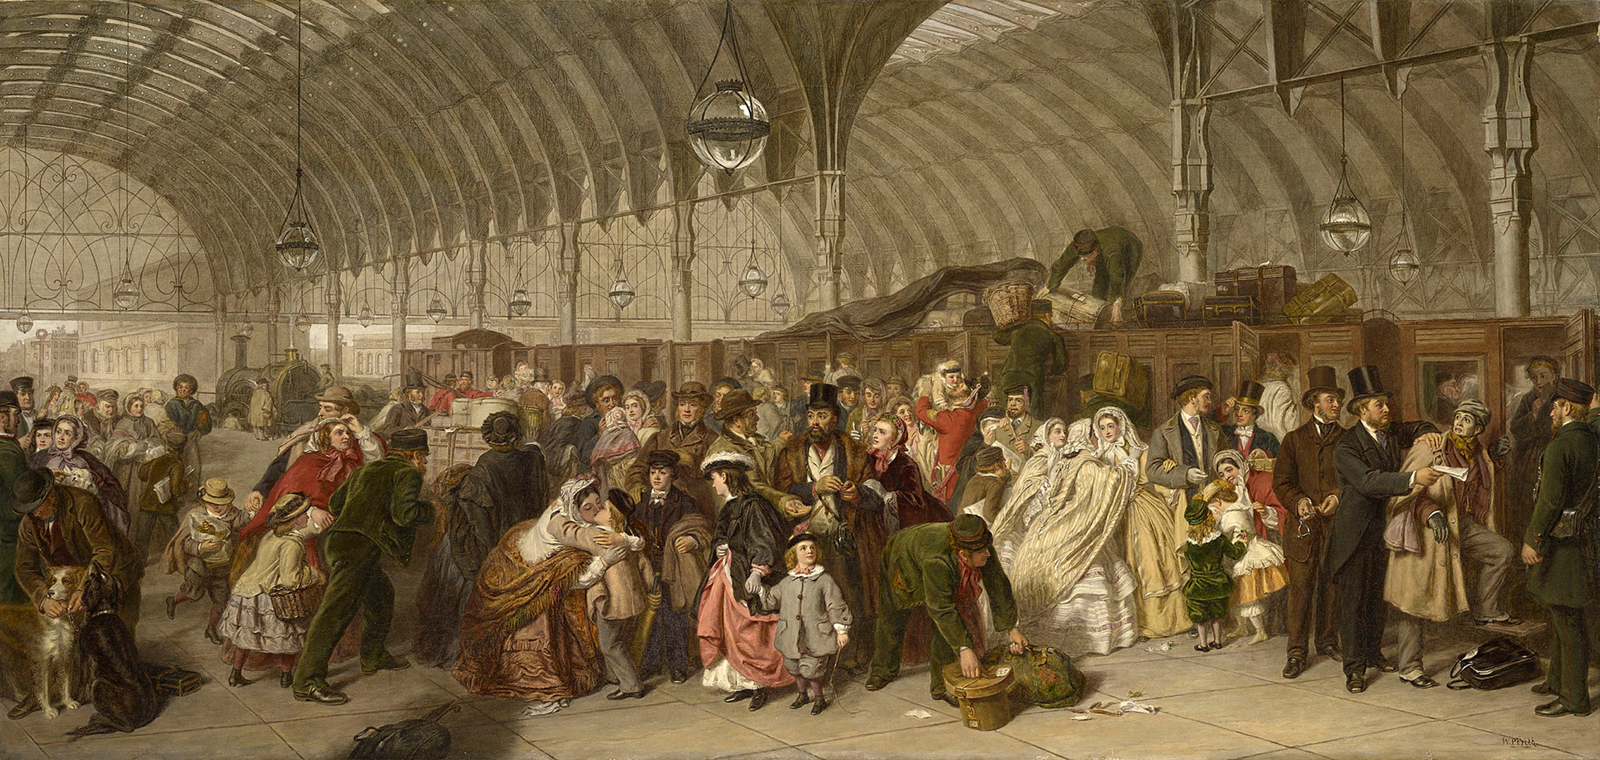 Five Things Everyone Should Know About the Victorians: William Powell Frith, The Railway Station, c.1862-1909, Royal Collection, London, England, UK.